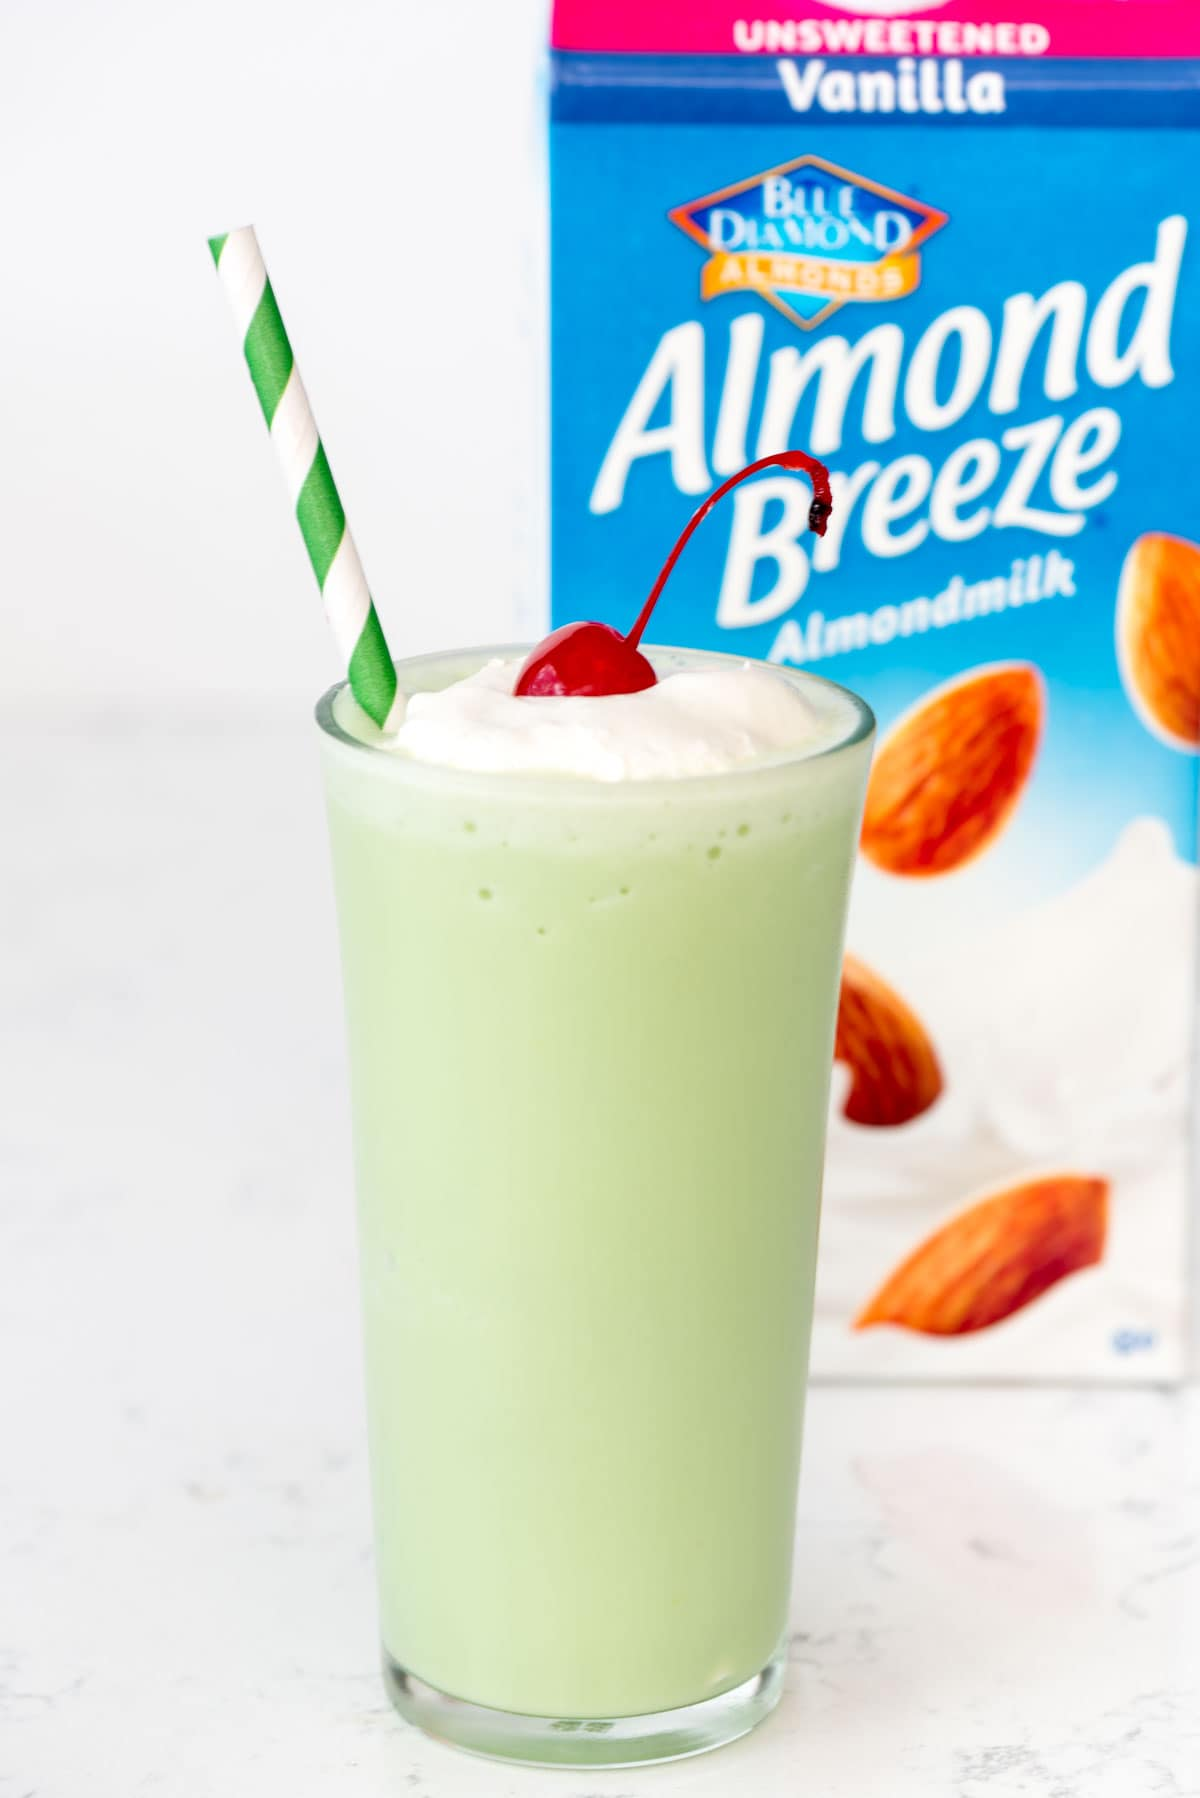 Copycat Mint Shake with Almond Breeze